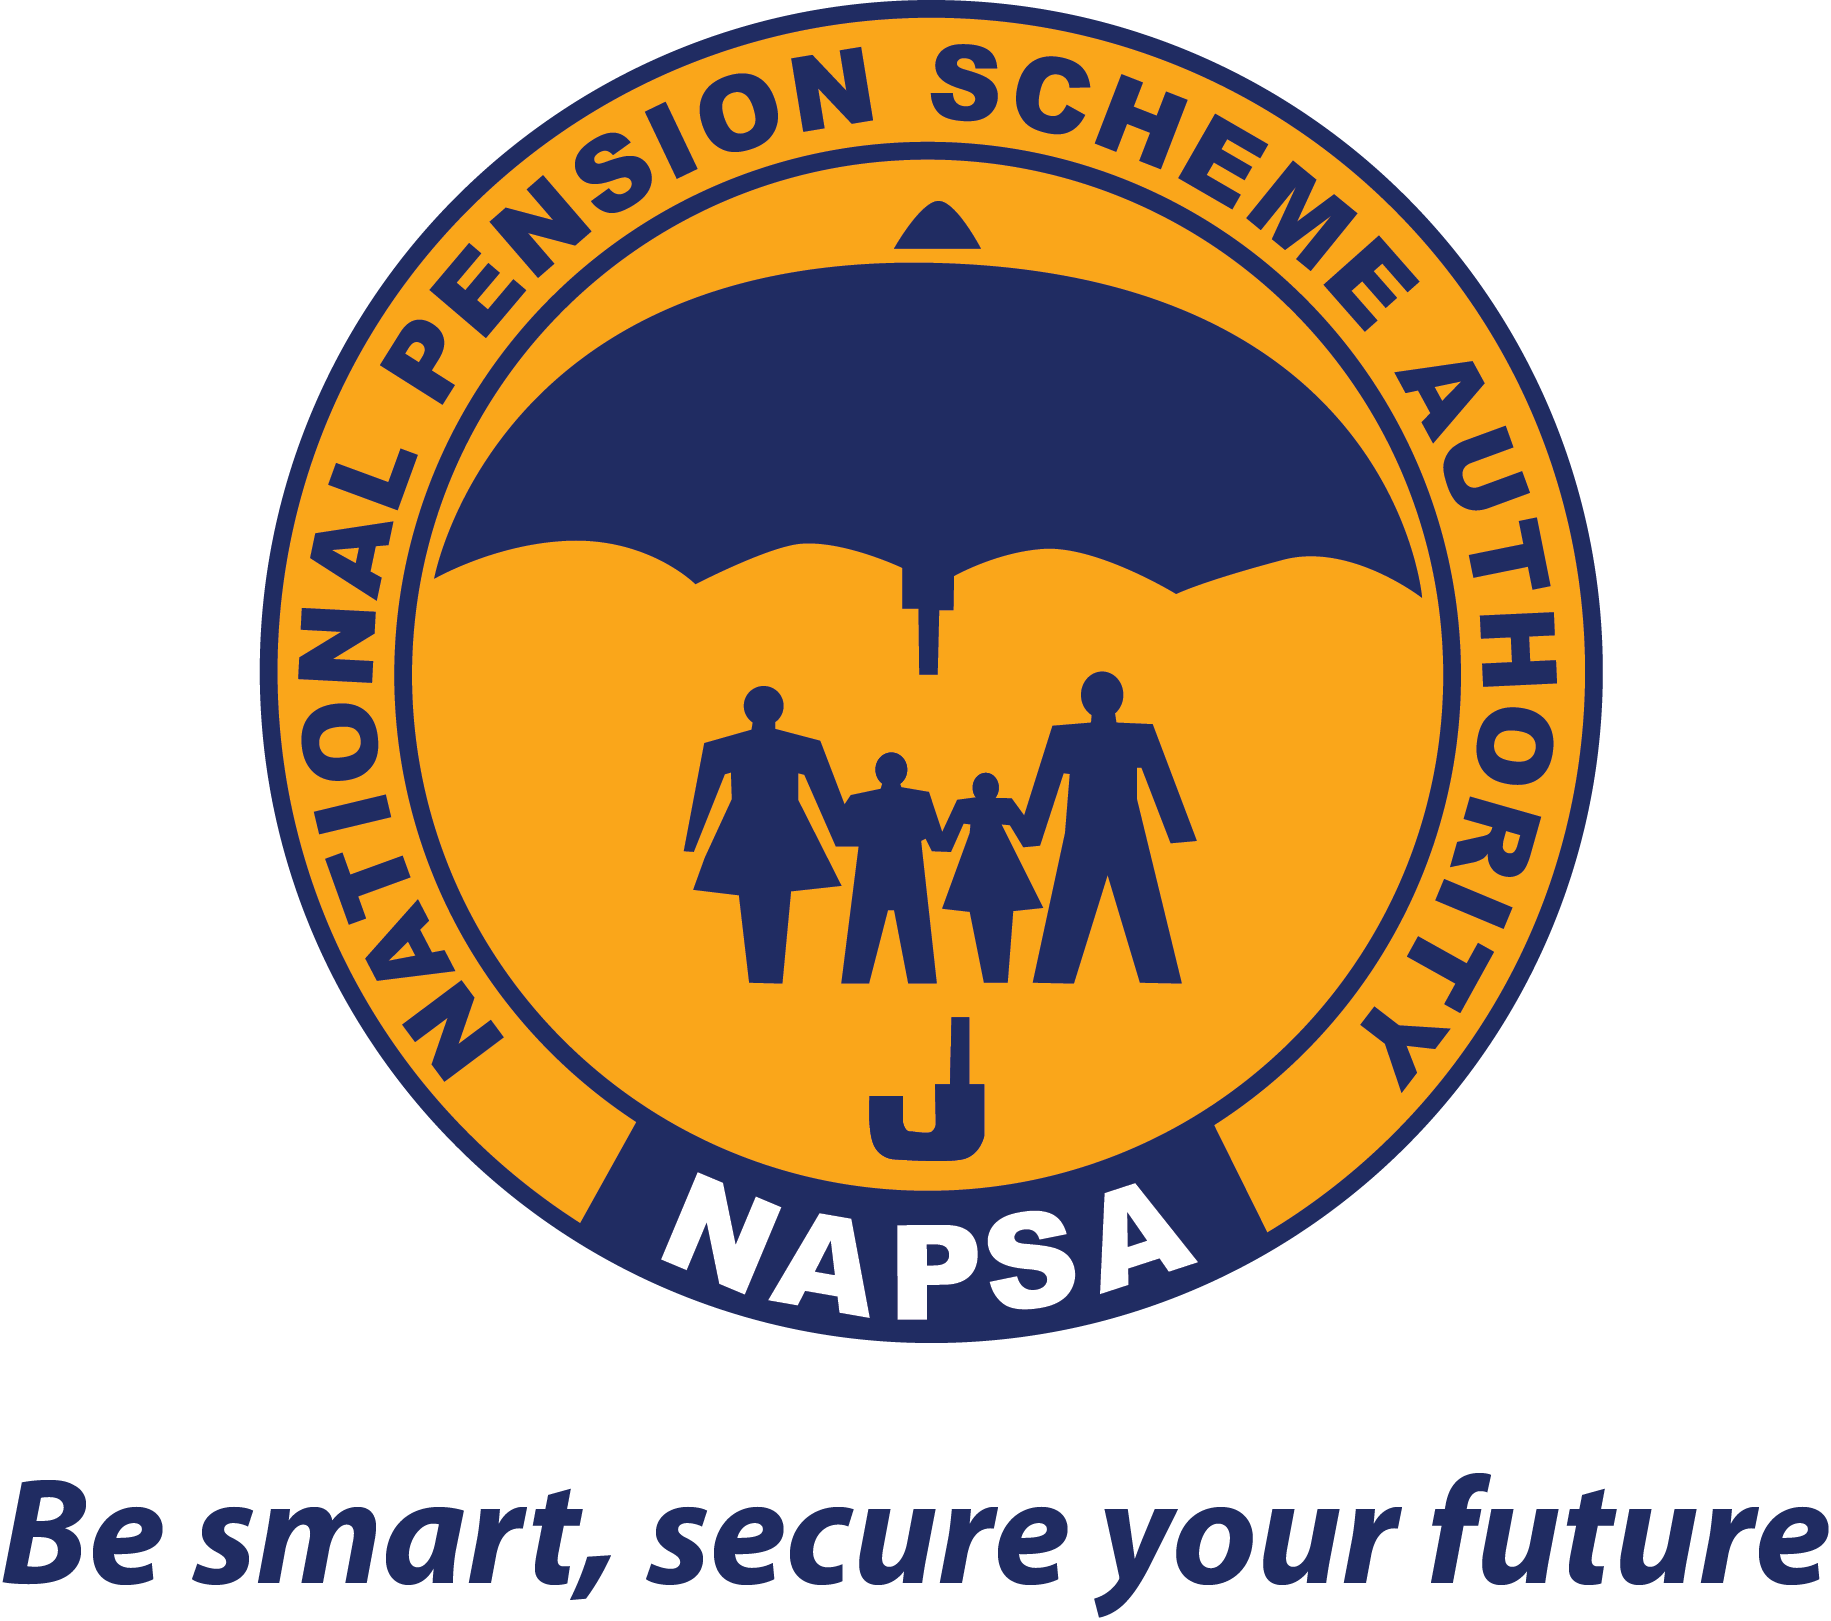 National Pension Scheme Authority